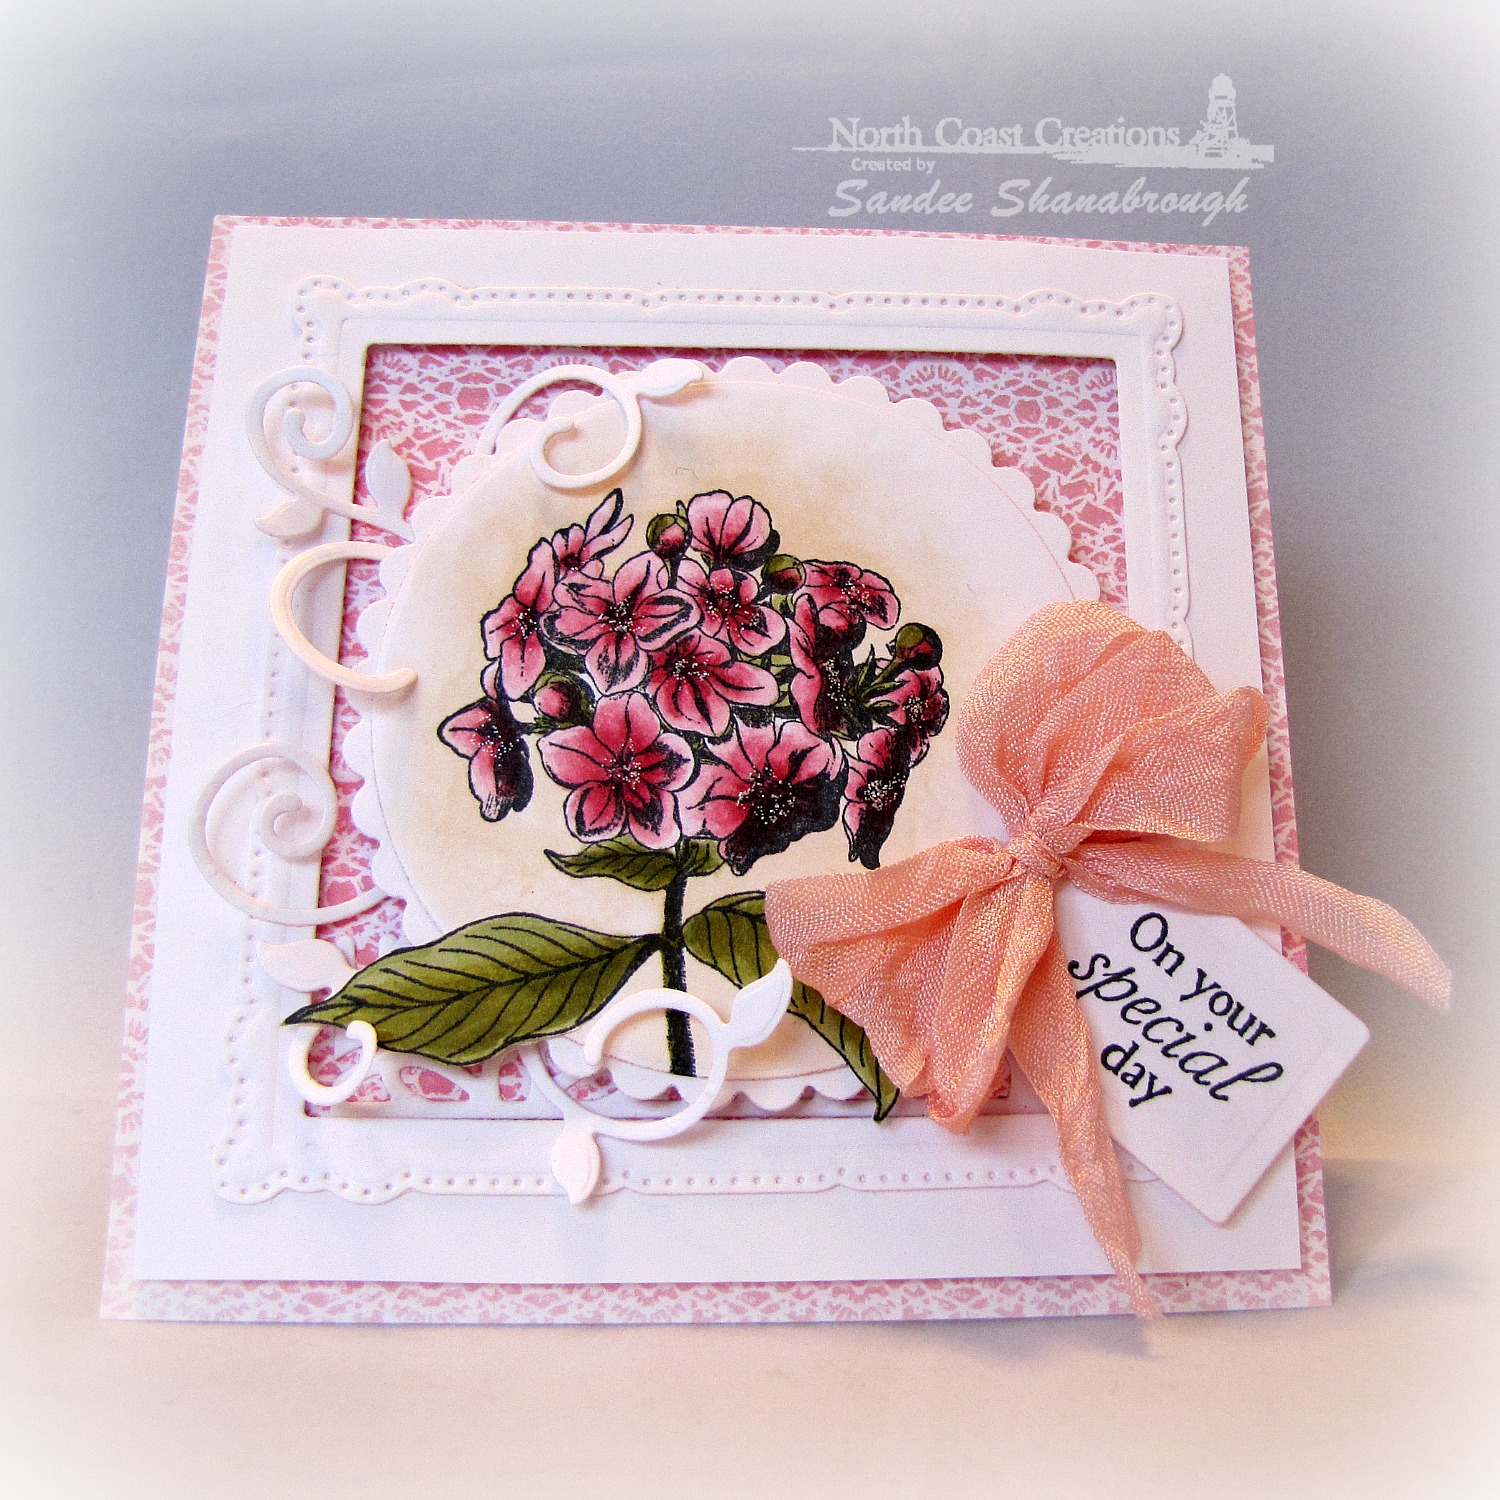 Stamps - North Coast Creations Floral Sentiments 6, ODBD Custom Recipe Card and Tags Dies, ODBD Custom Fancy Foliage Die, ODBD Heart and Soul Paper Collection